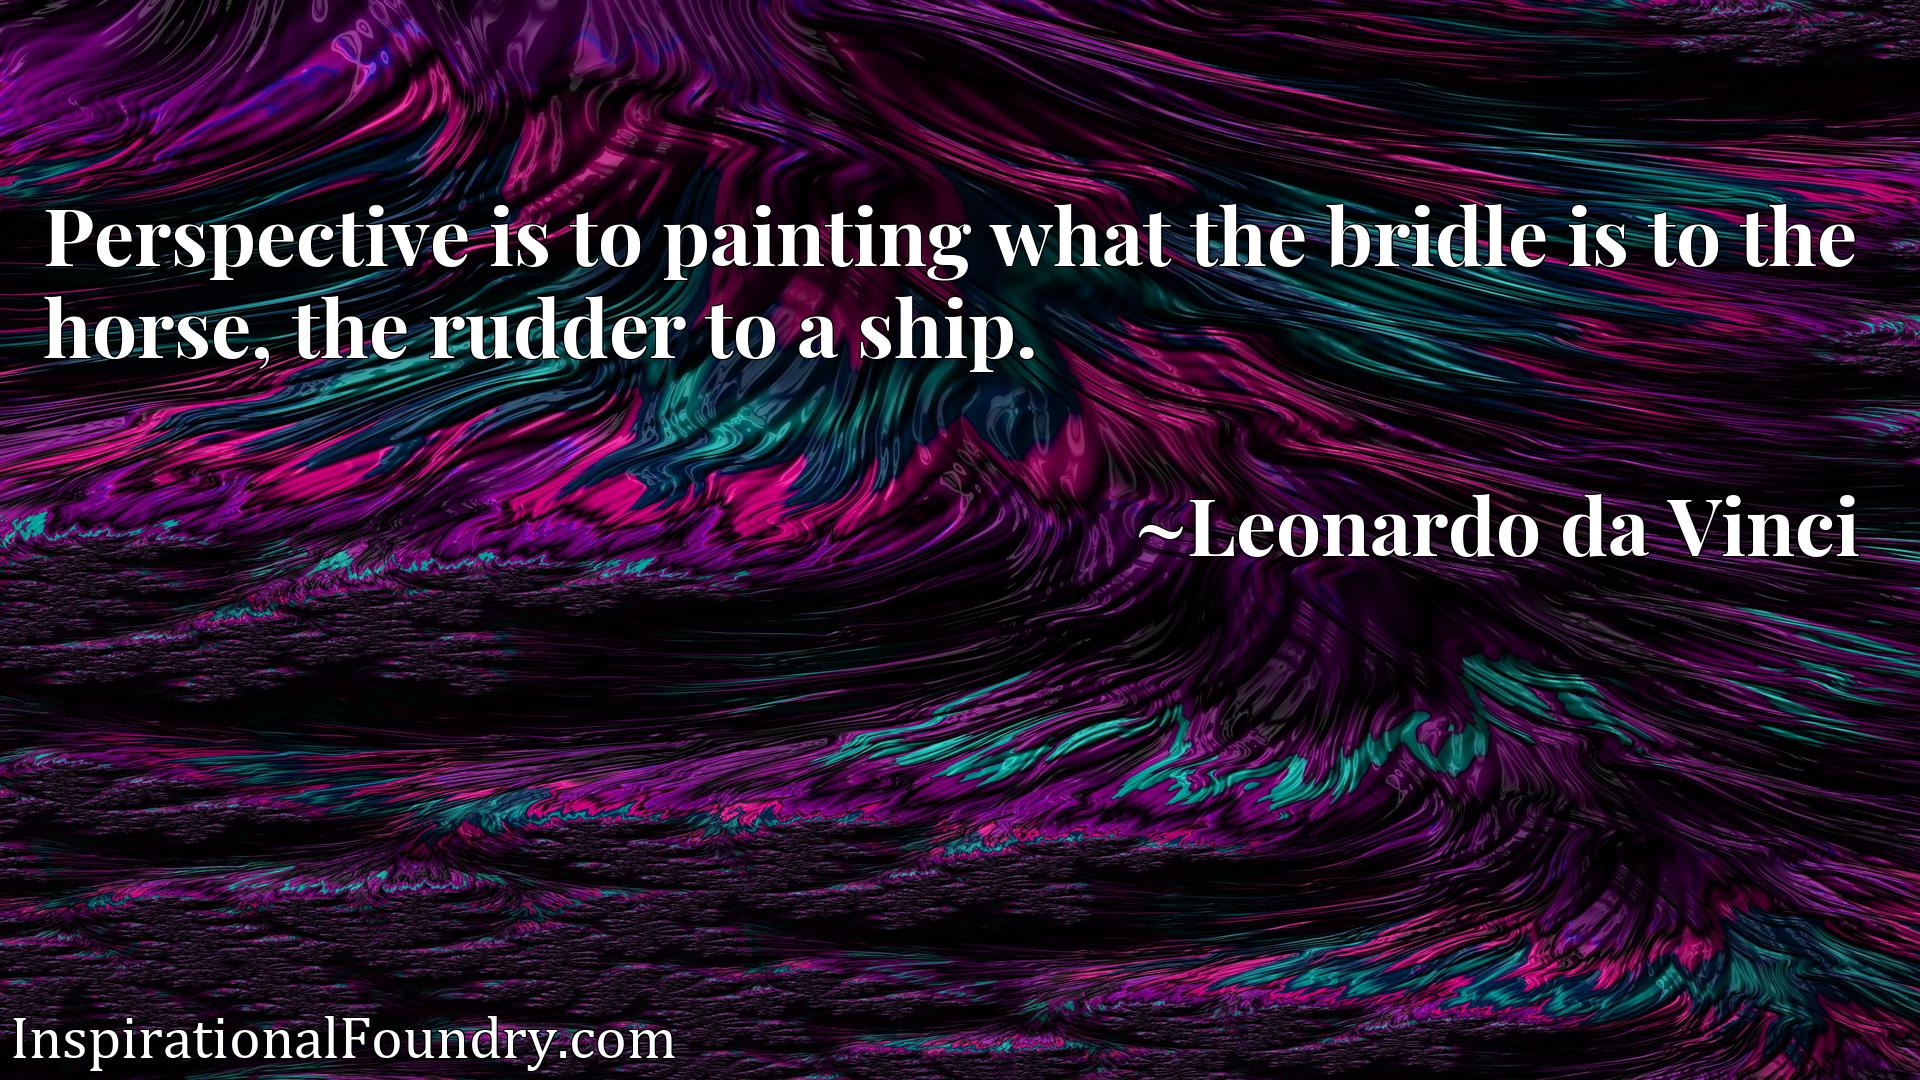 Perspective is to painting what the bridle is to the horse, the rudder to a ship.